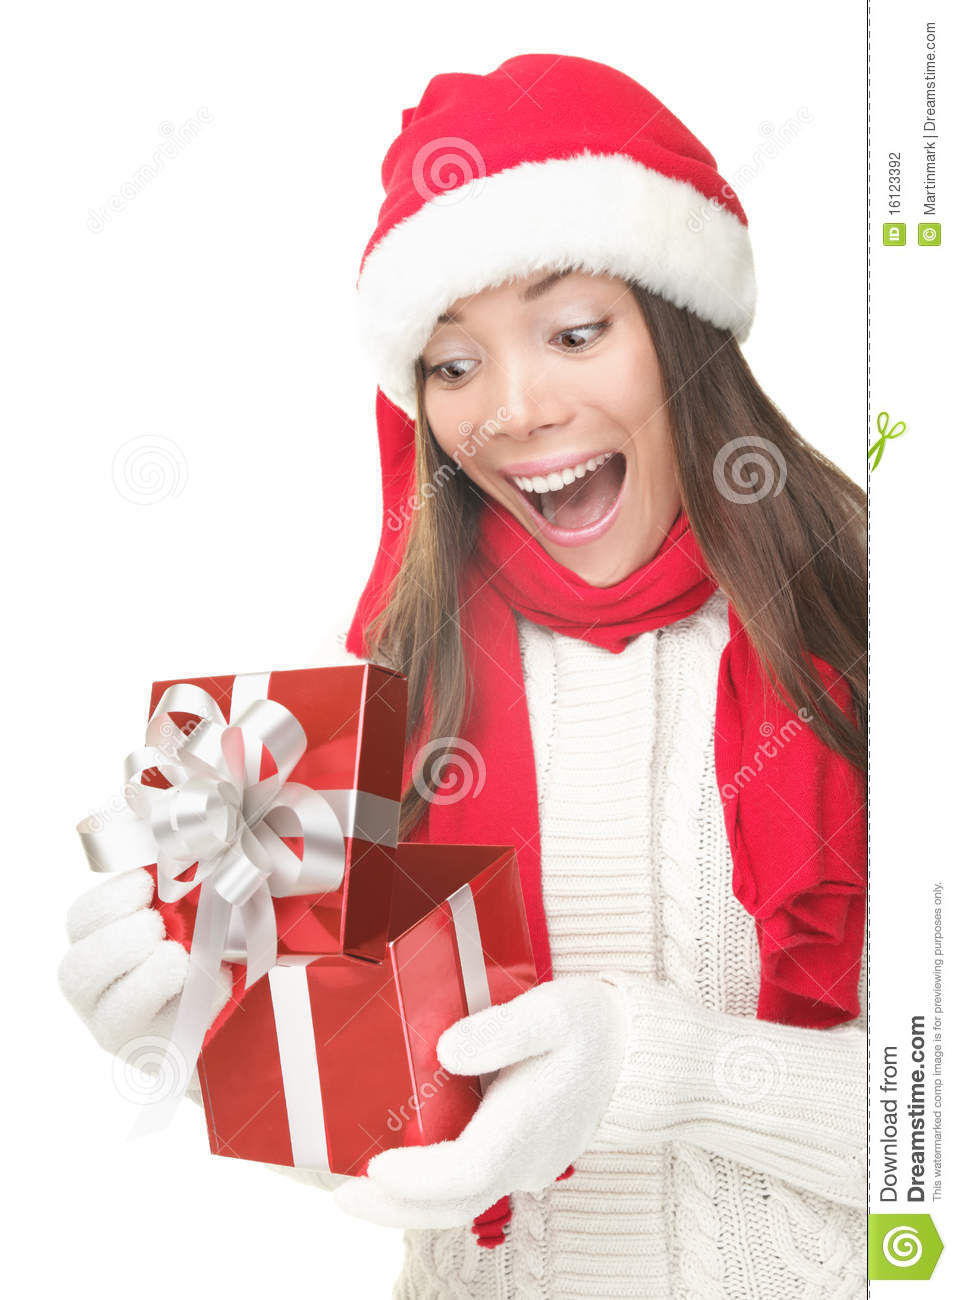 Christmas gift woman opening present surprised